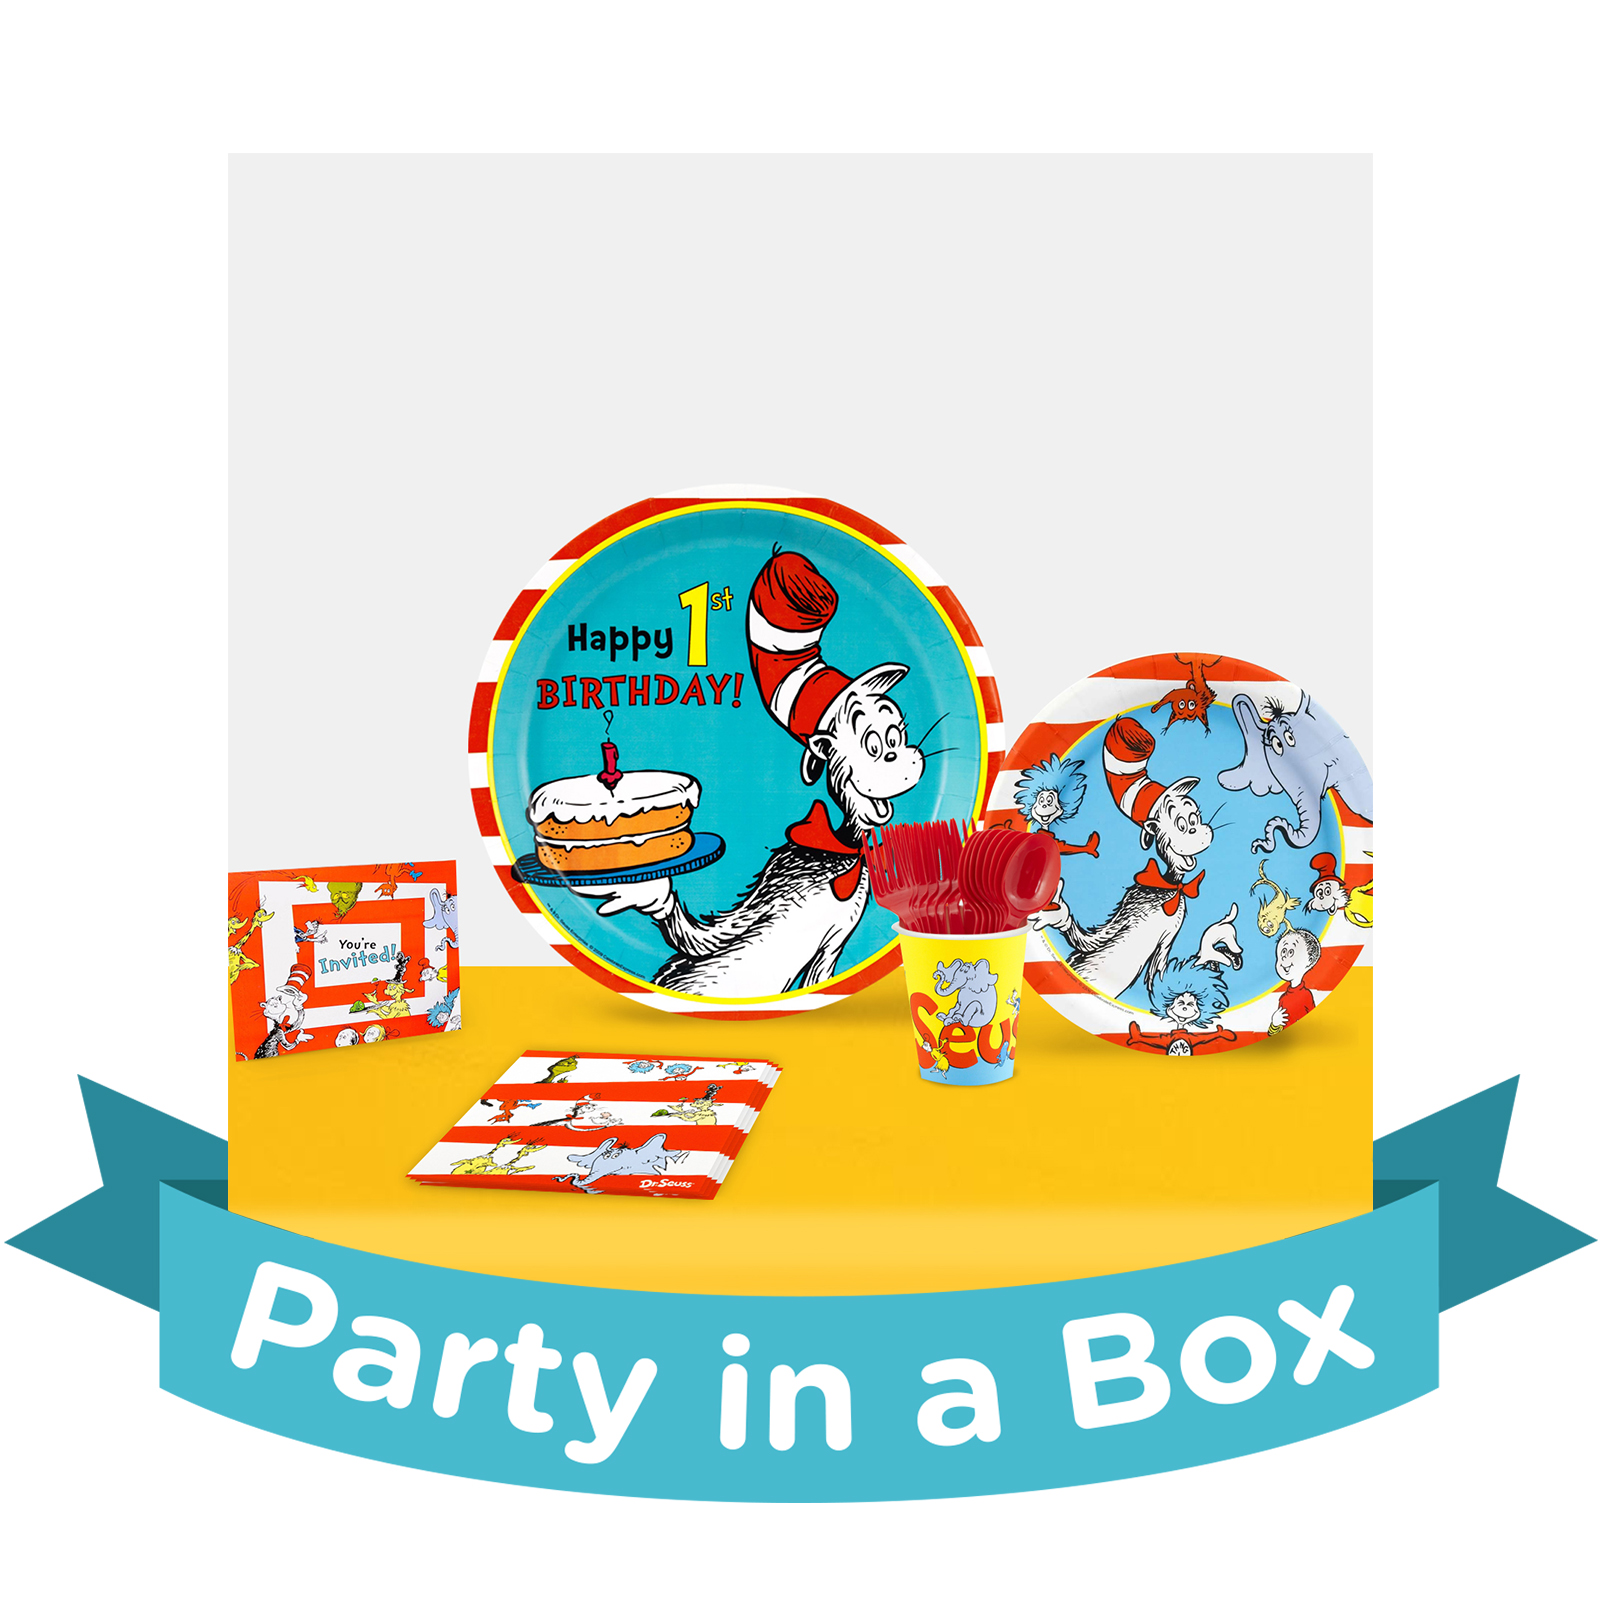 Dr. Seuss 1st Birthday Party in a Box For 16  sc 1 st  Birthday Express & 1st Birthday Tableware \u0026 Cake Supplies | BirthdayExpress.com